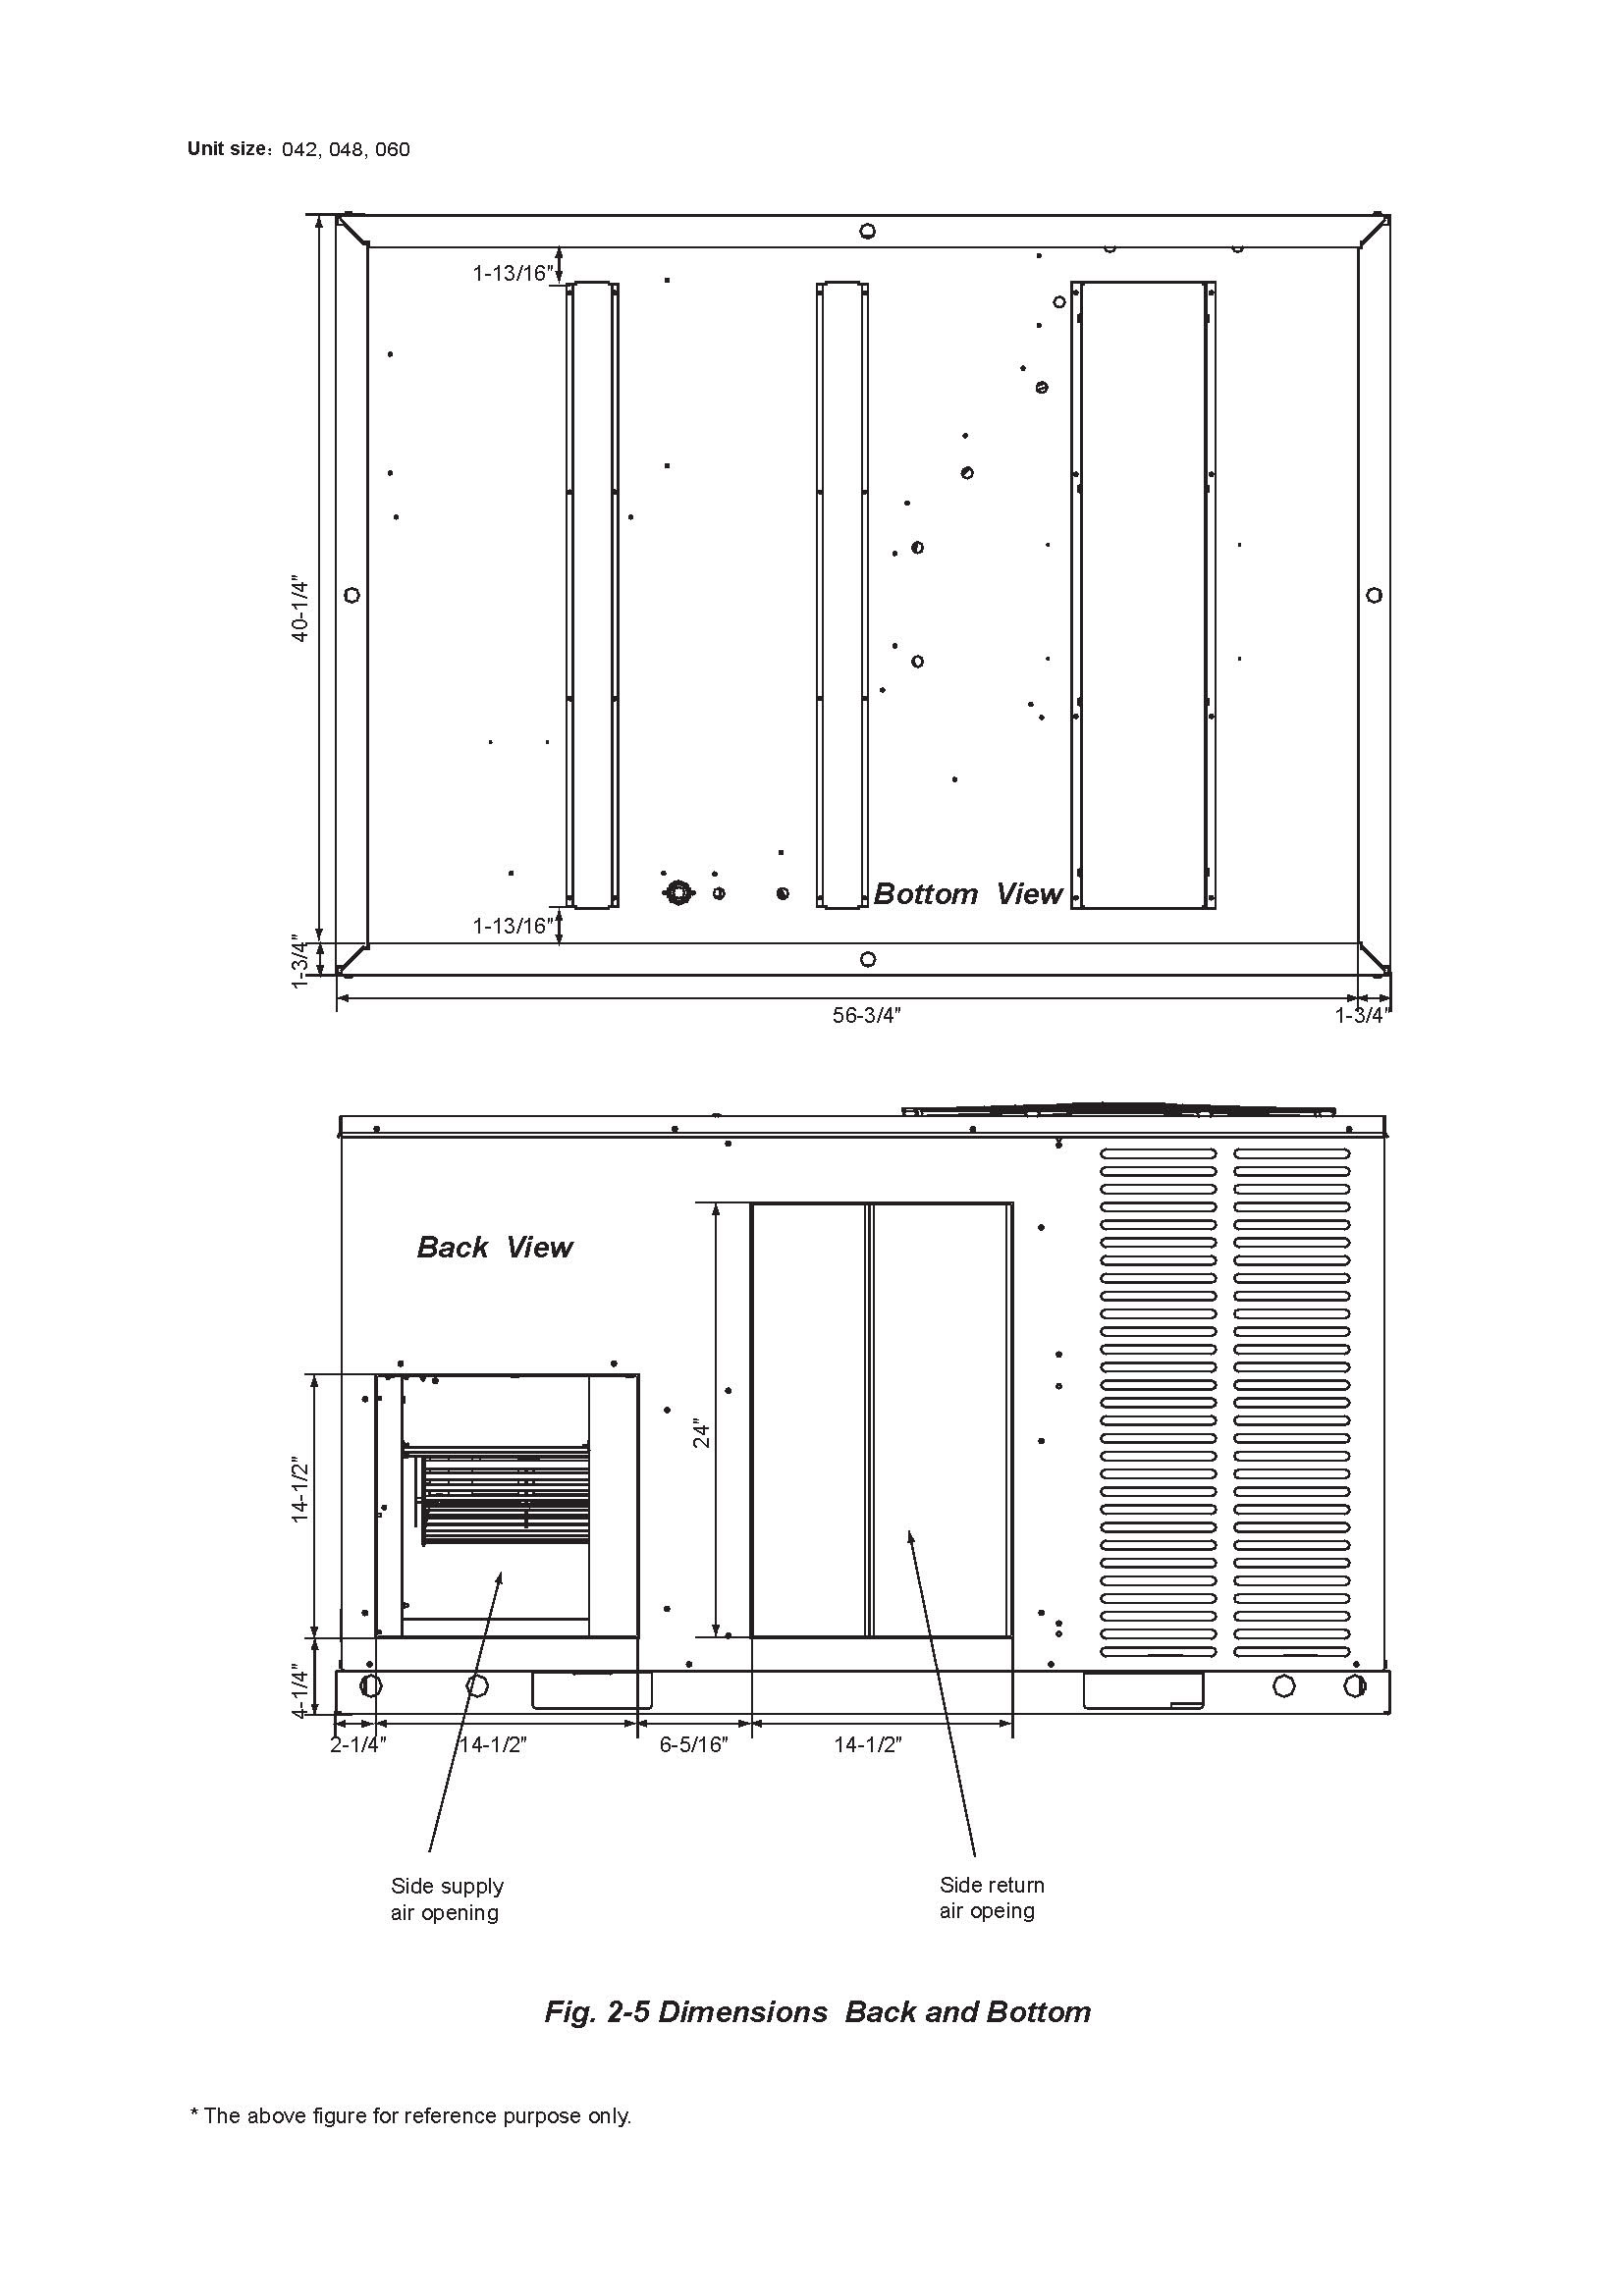 Trane Rooftop Ac Wiring Diagrams in addition Trane Weathertron Thermostat Wiring additionally Trane Schematic Diagram additionally Trane Package Voyager Wiring Diagram further American Standard Air Handler Wiring Diagram. on trane xl1200 heat pump